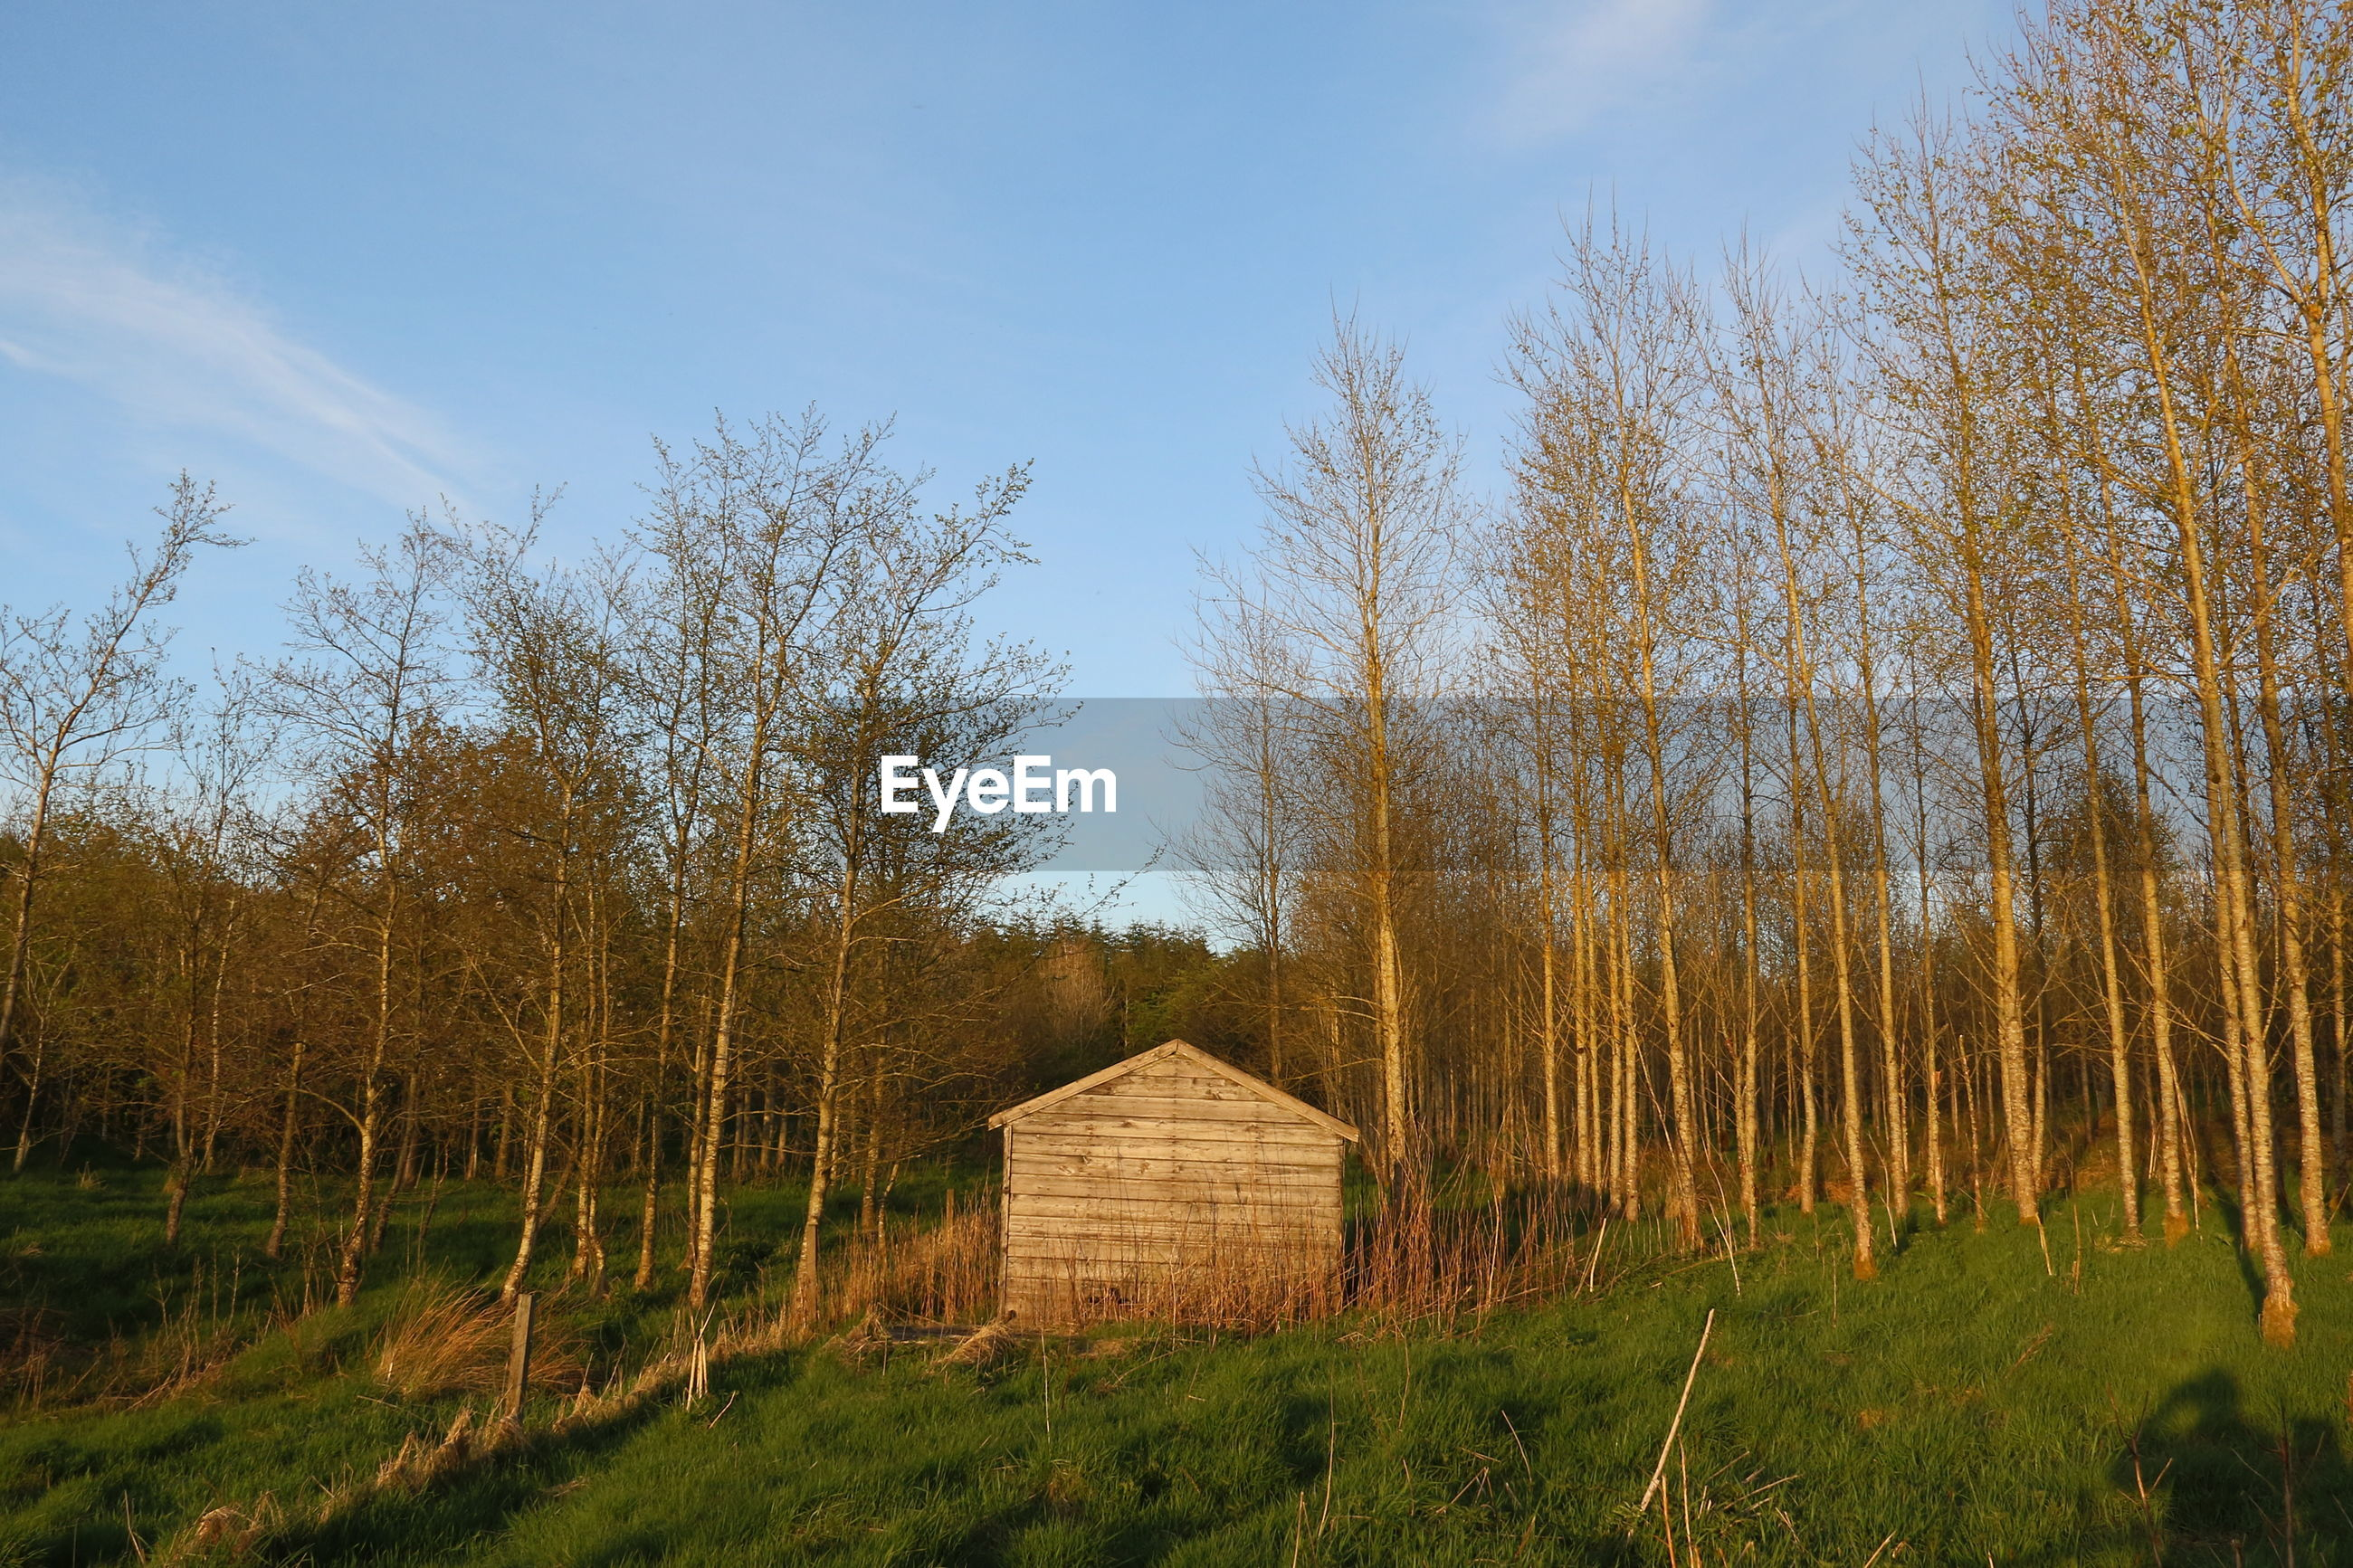 Trees and cabin in field against sky